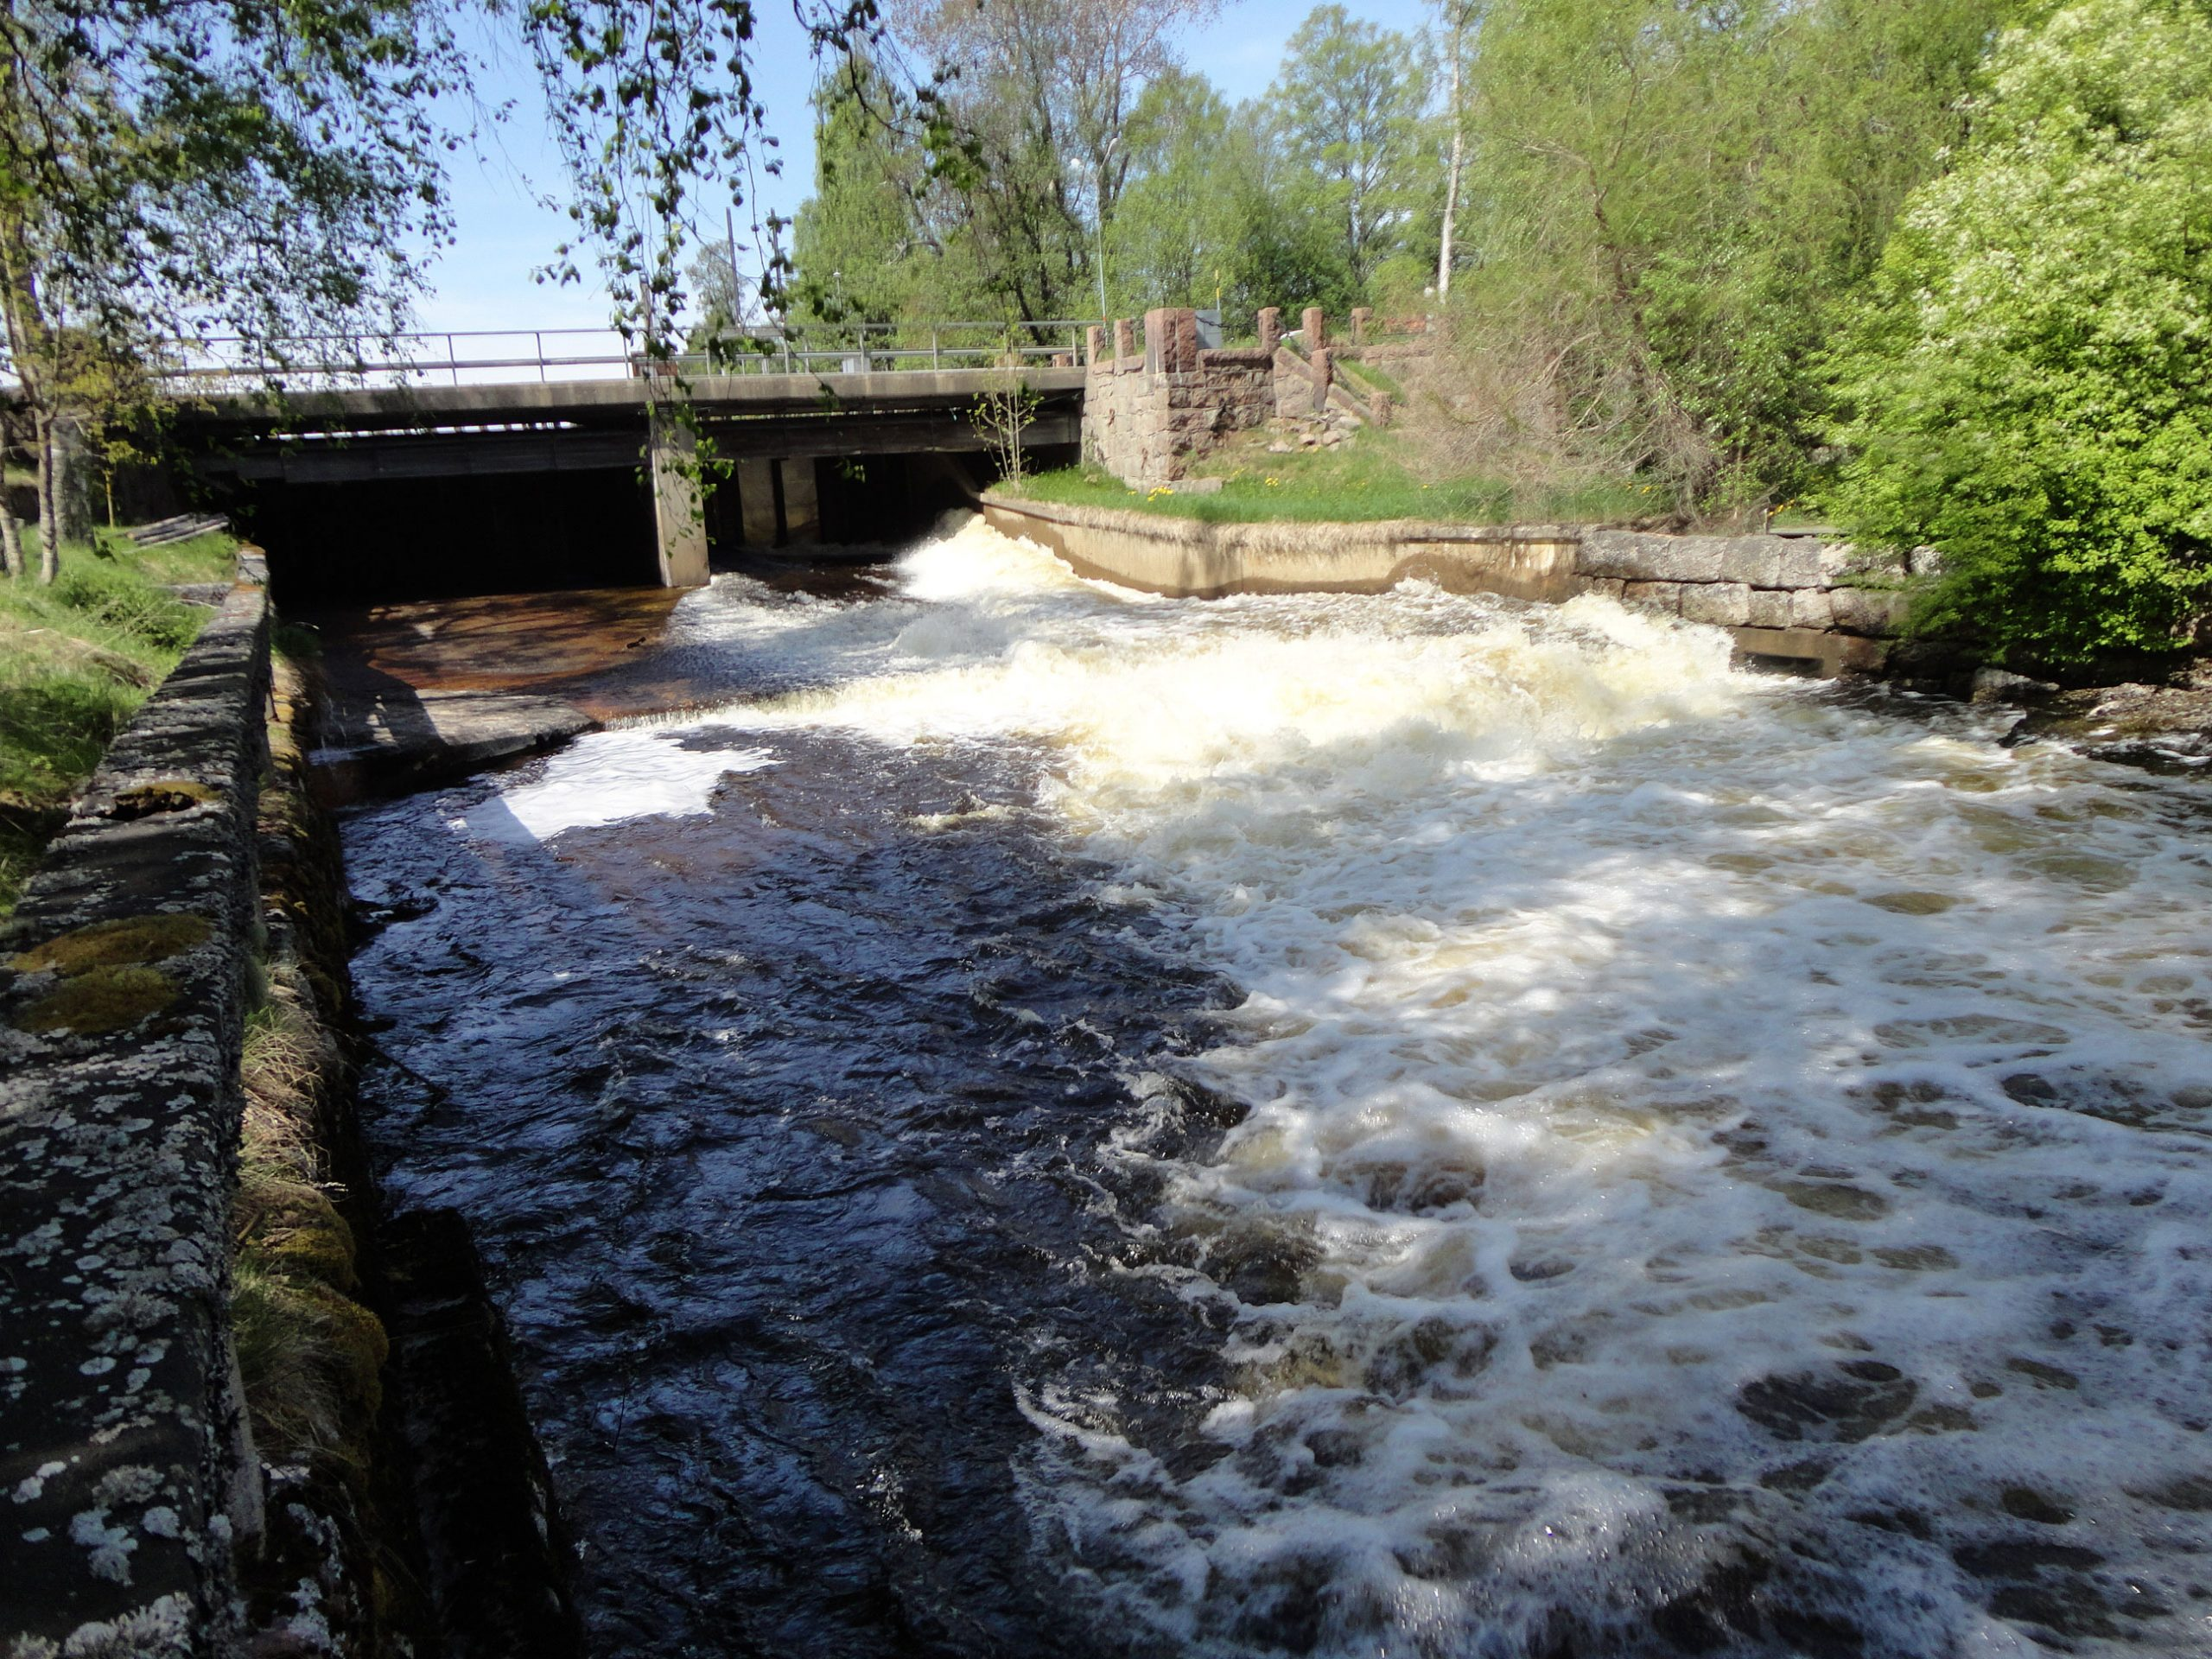 We can expect more dam removals in Sweden in the next decade